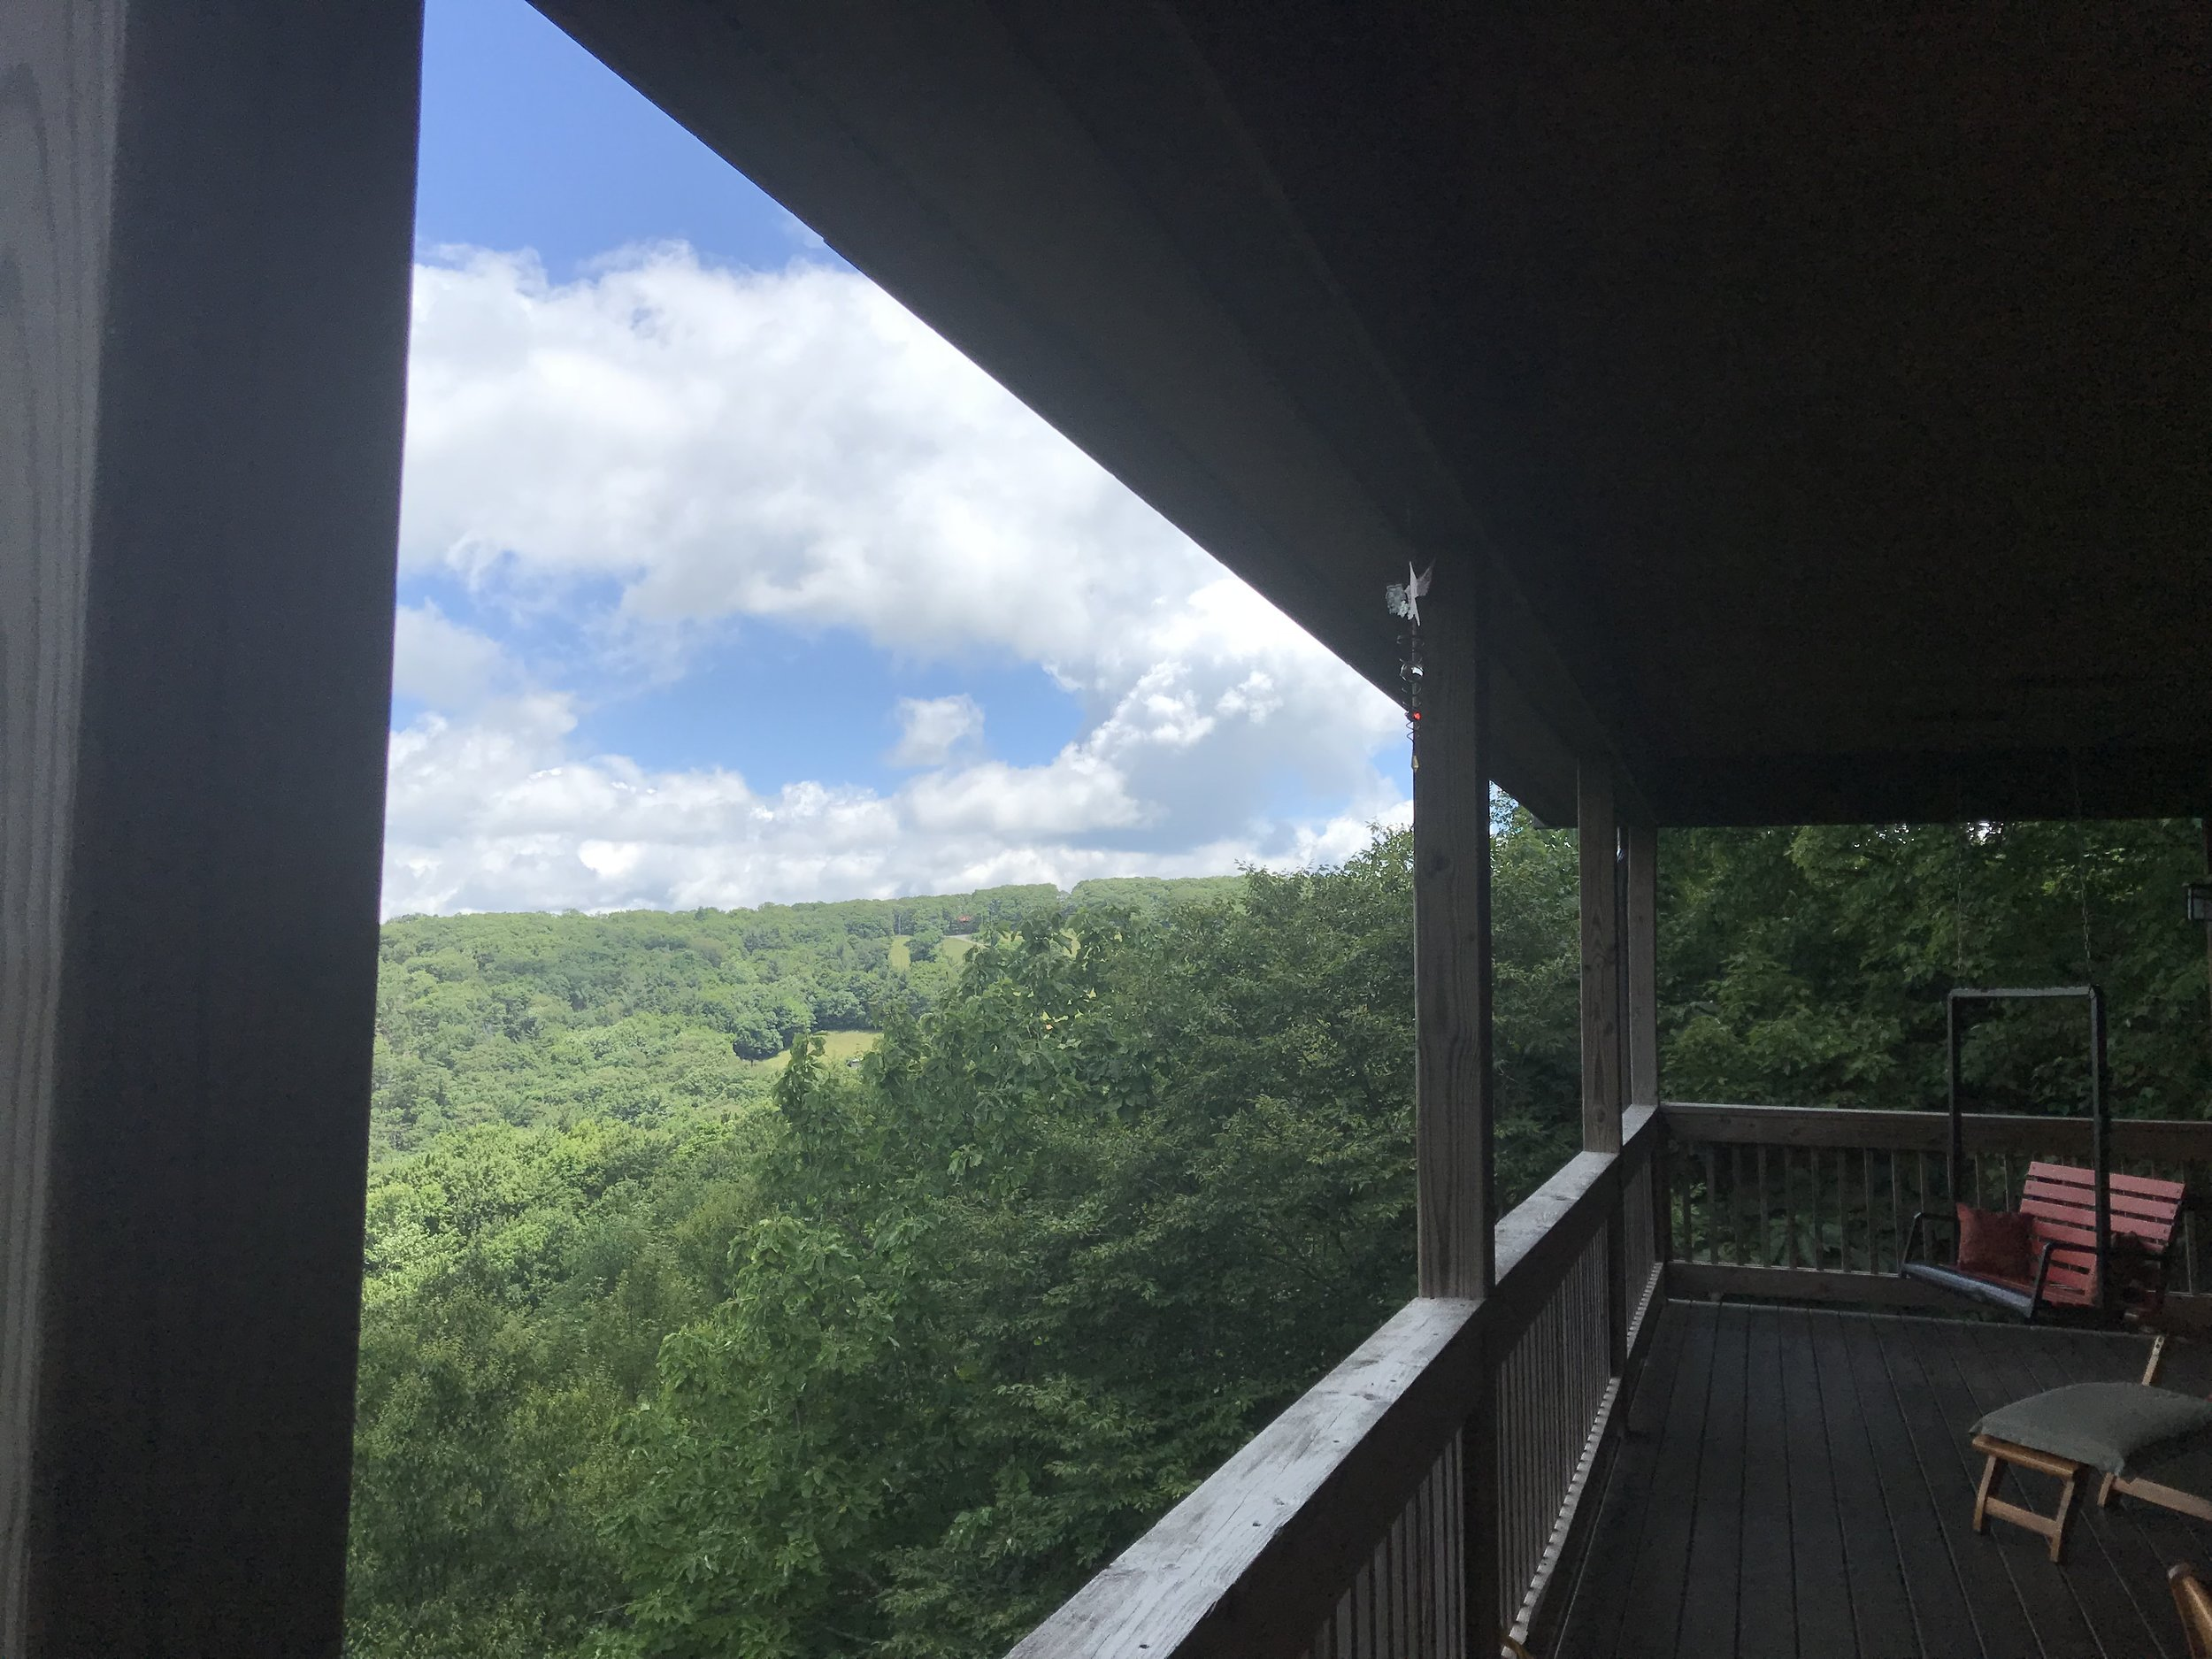 The stunning view from our guest stay on Beech Mountain